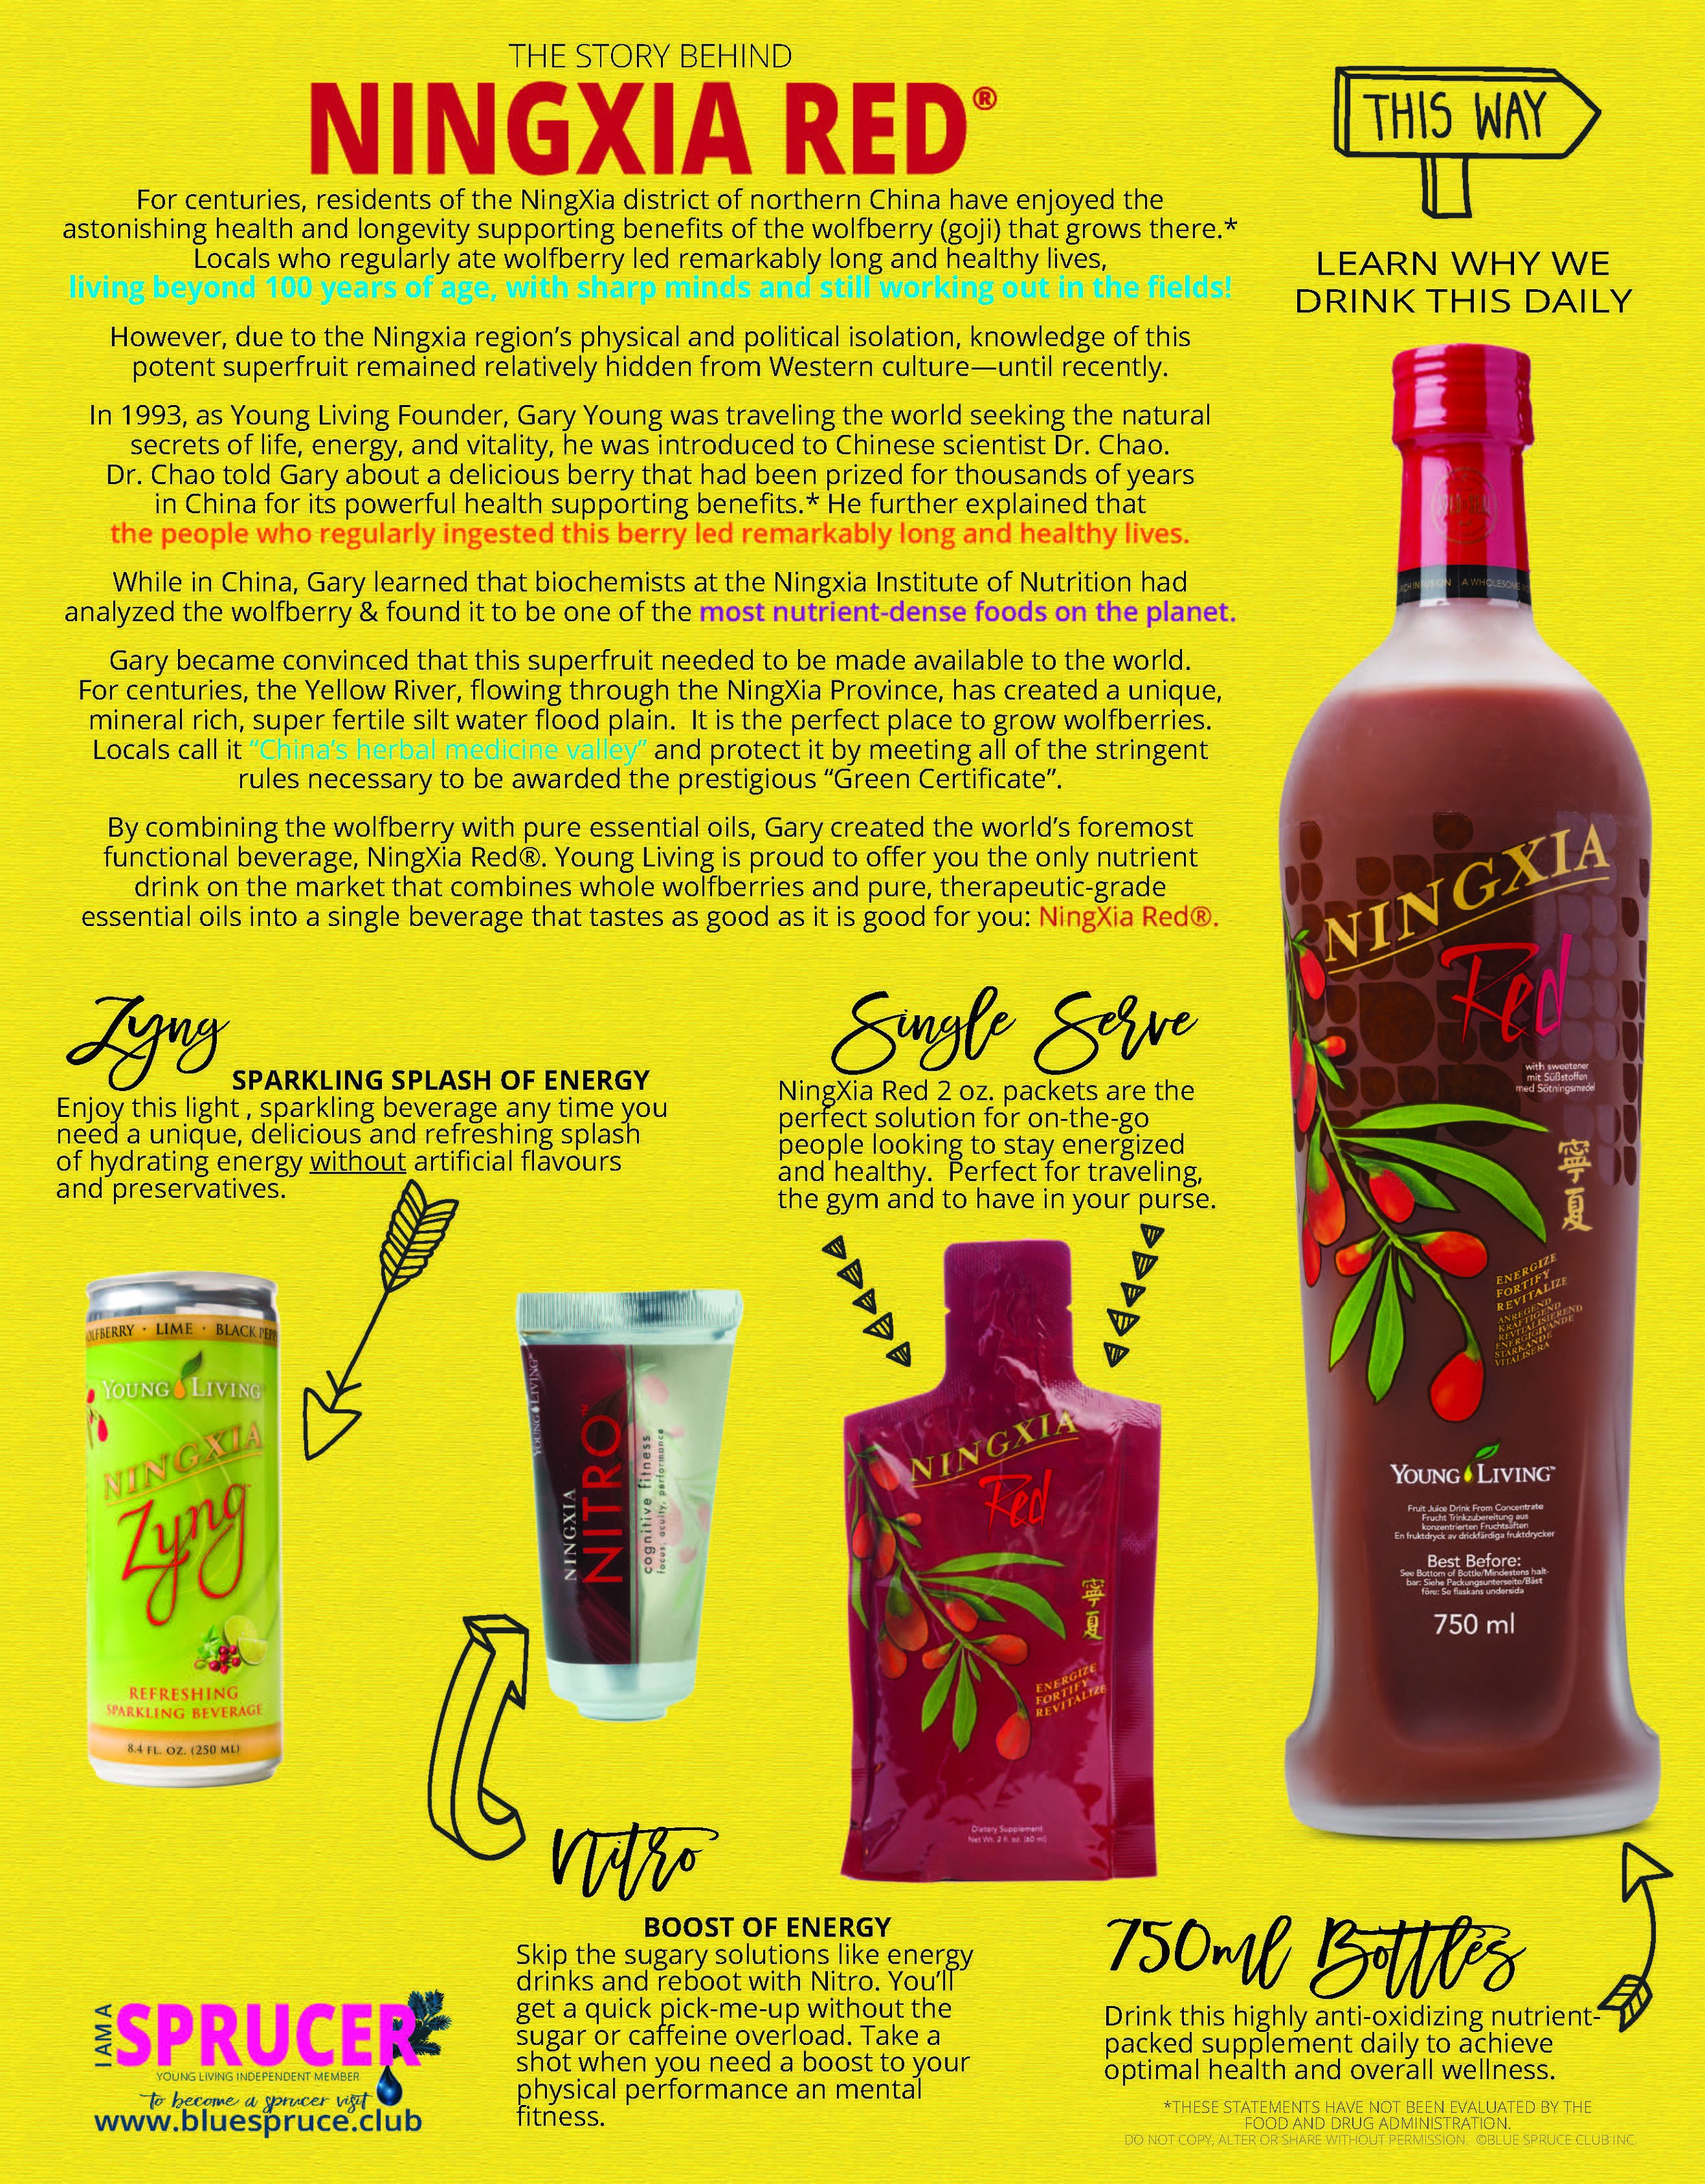 18_Story of Ningxia Red and products_BSC.jpg